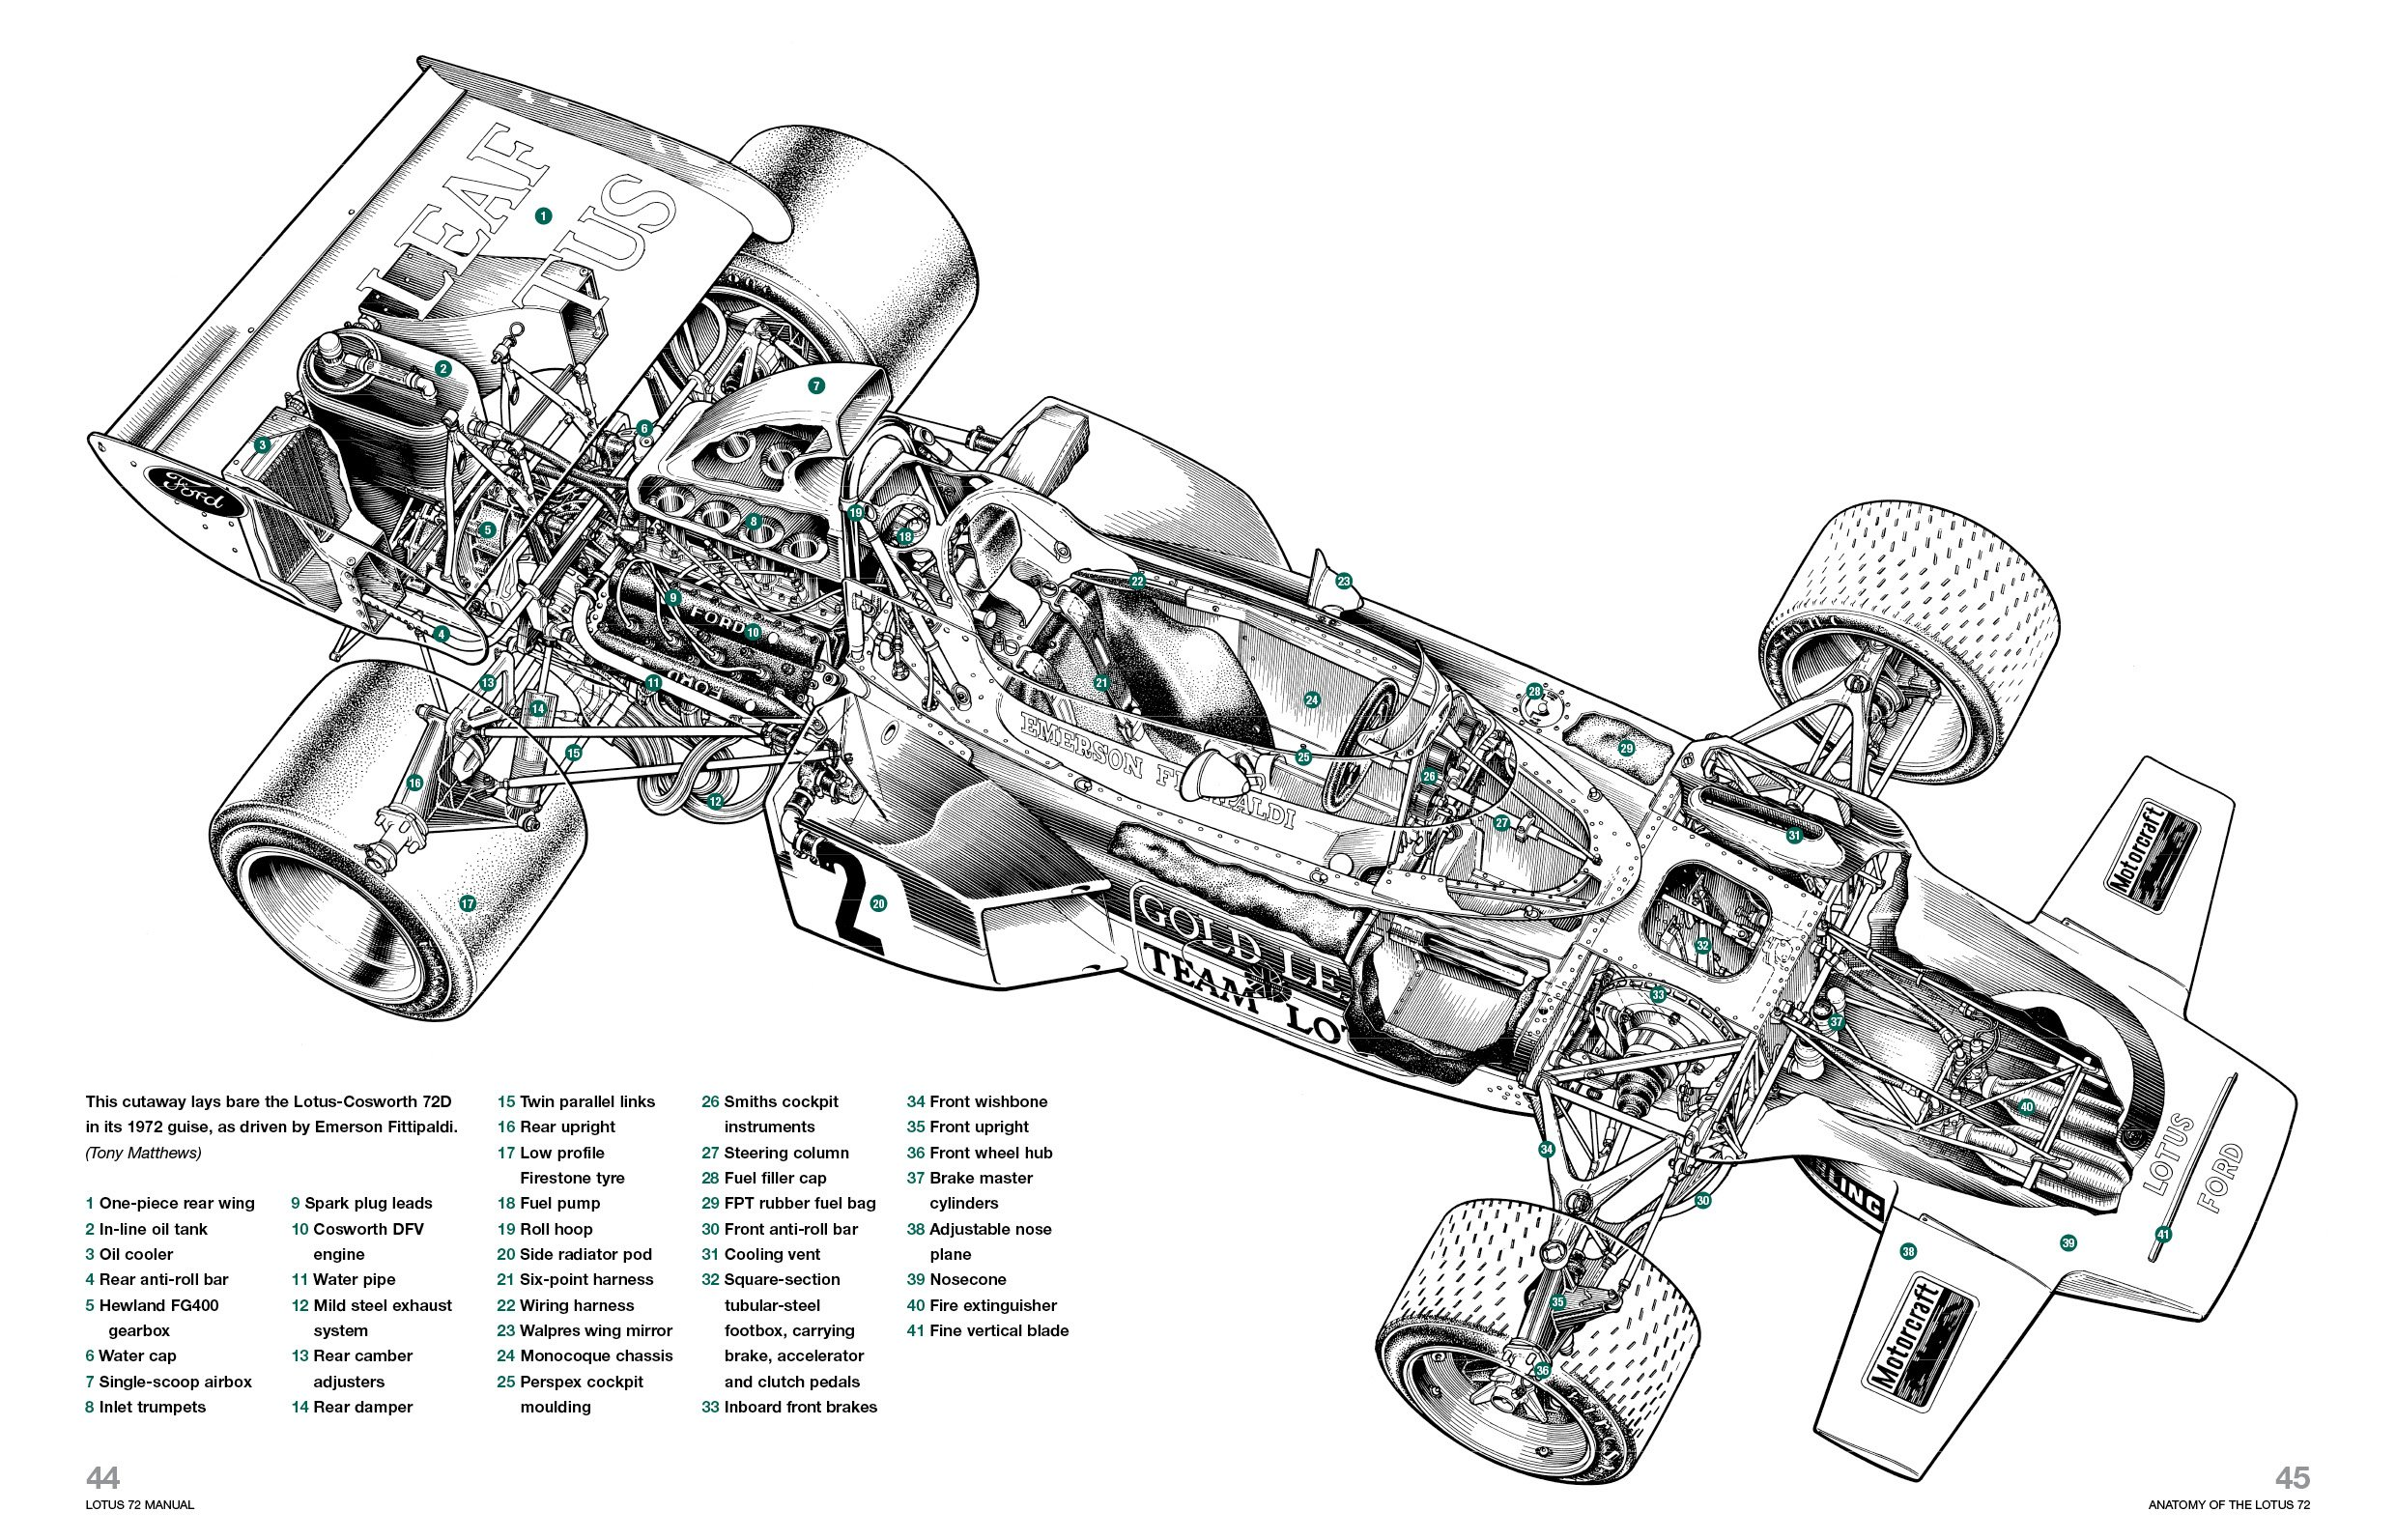 Lotus 72 Manual An Insight Into Owning Racing And Maintaining Piping Layout Engineer Interview Engine Schematic Lotuss Legendary Formula 1 Car Haynes Owners Workshop Manuals Ian Wagstaff